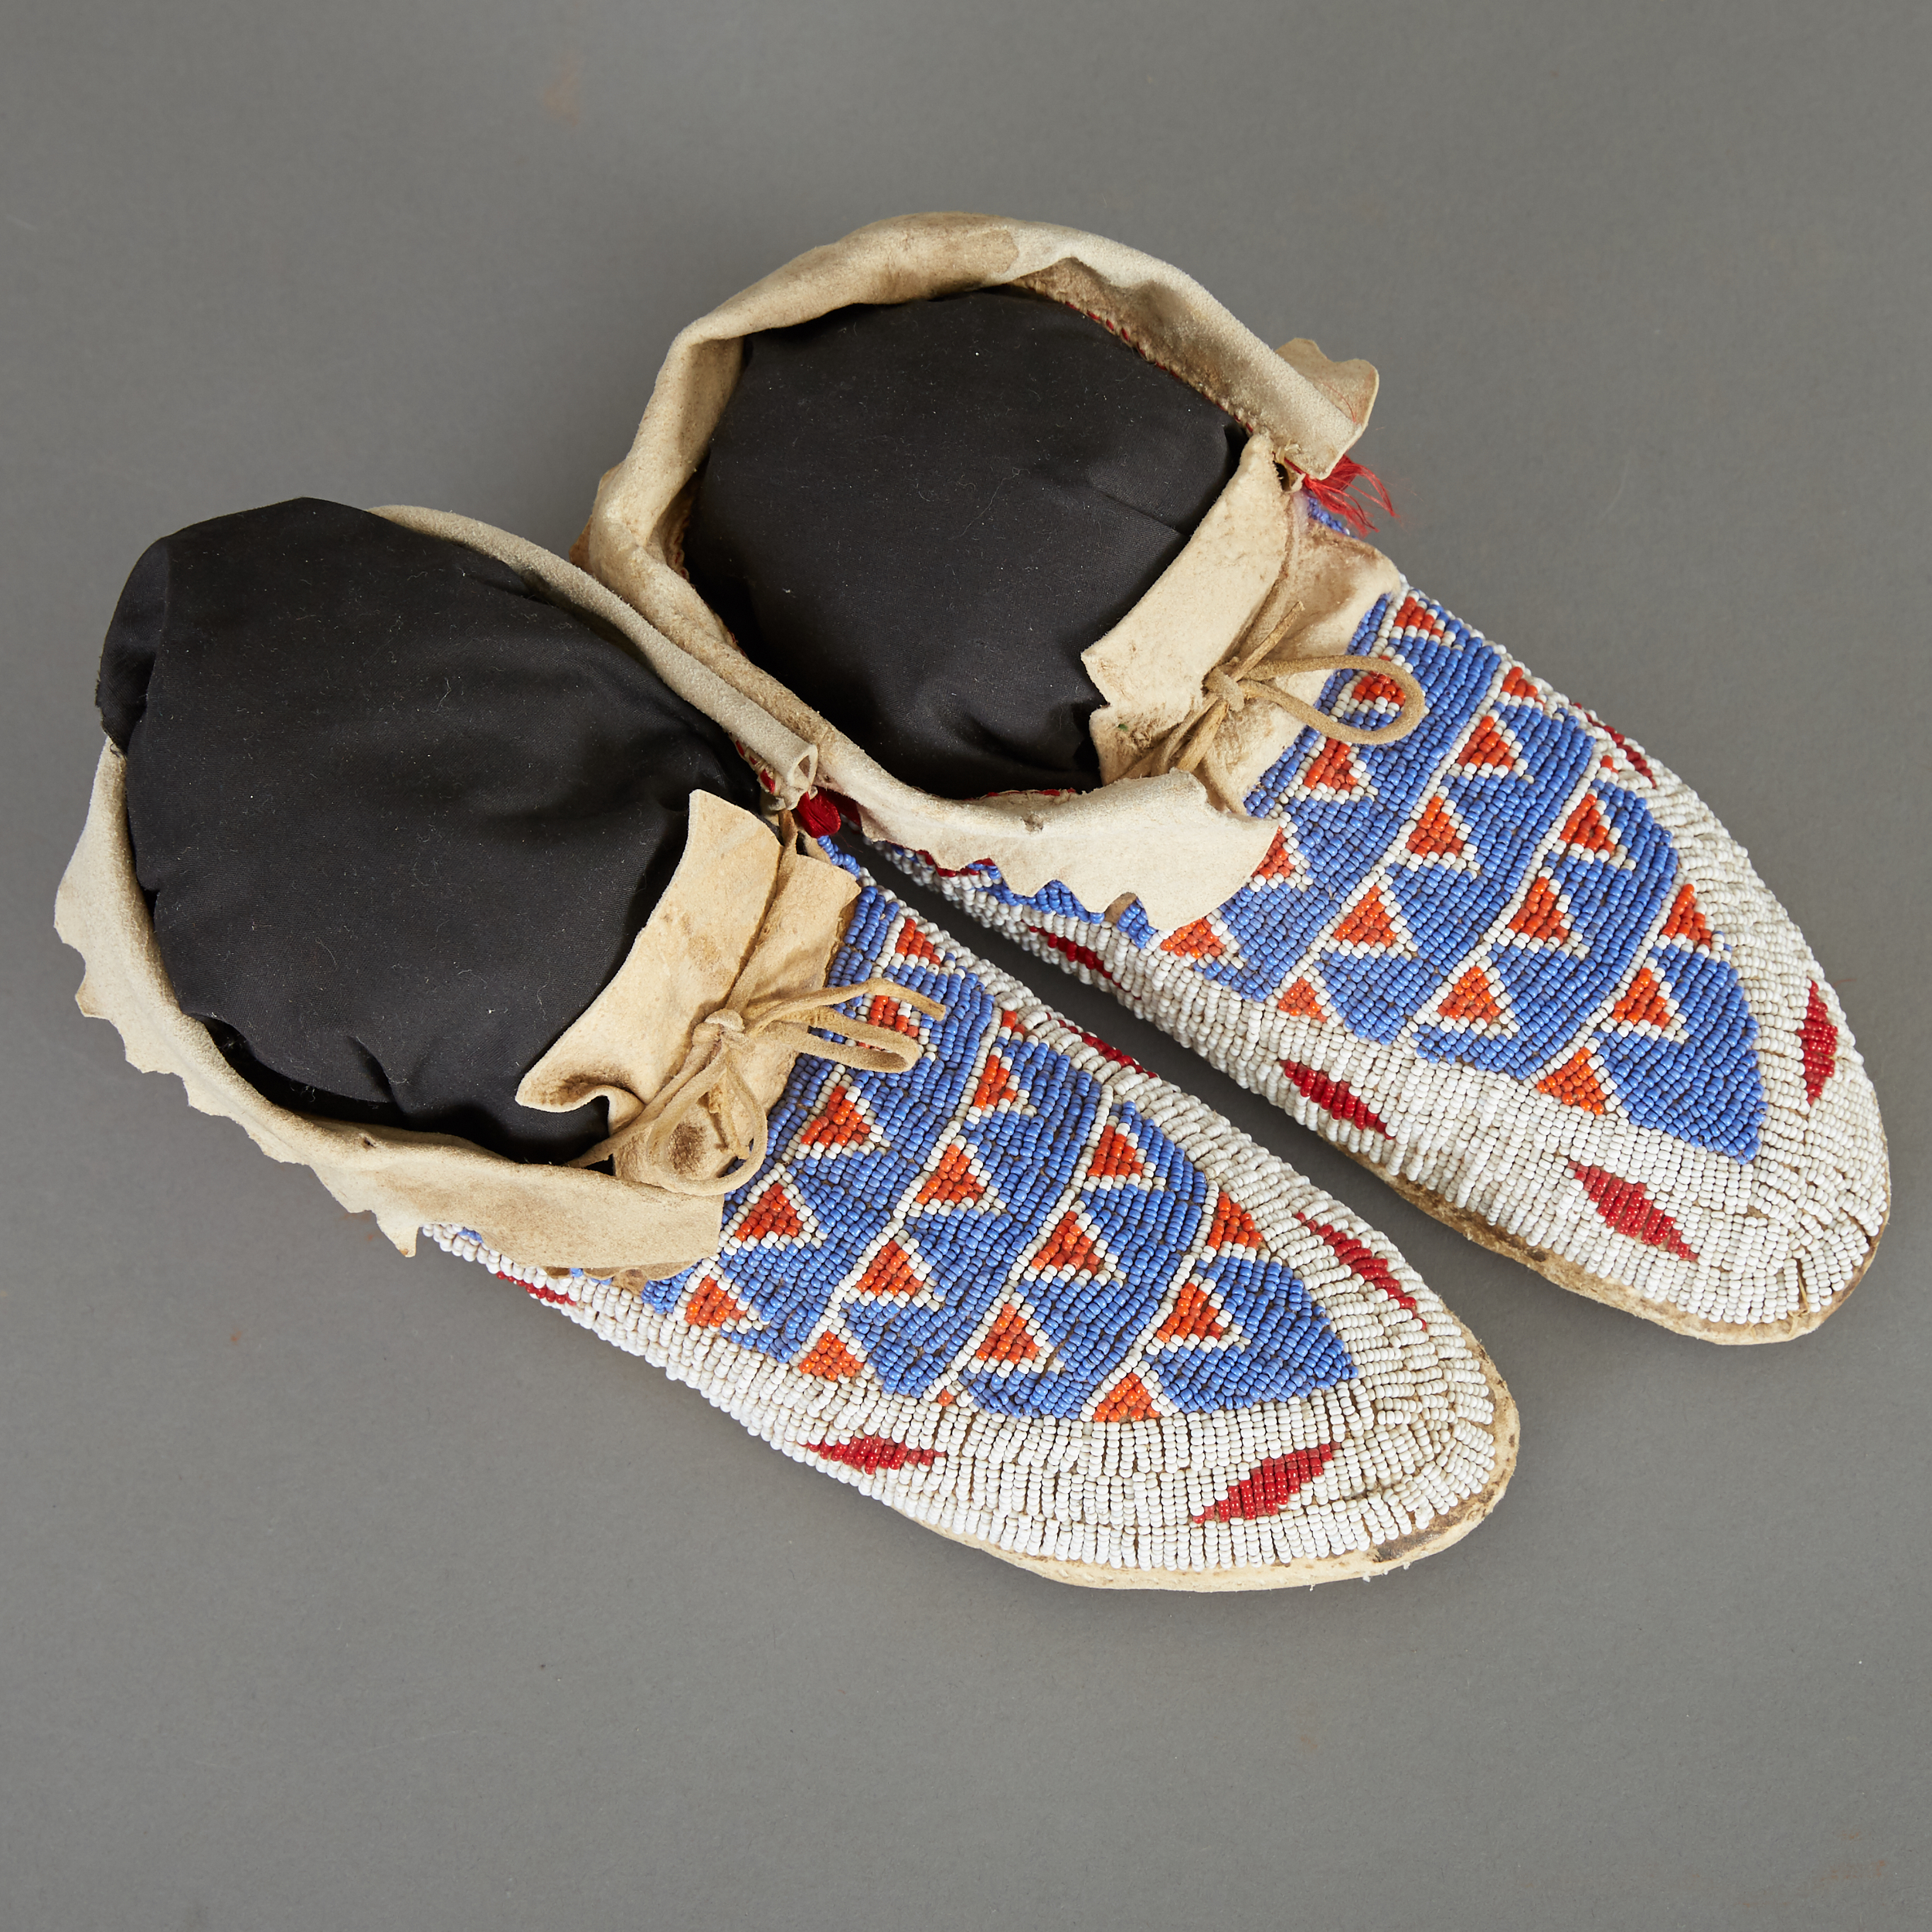 Los 242 - Ute moccasins with geometric beading and fold-over ankle cuffs, southern Colorado, circa 1910....